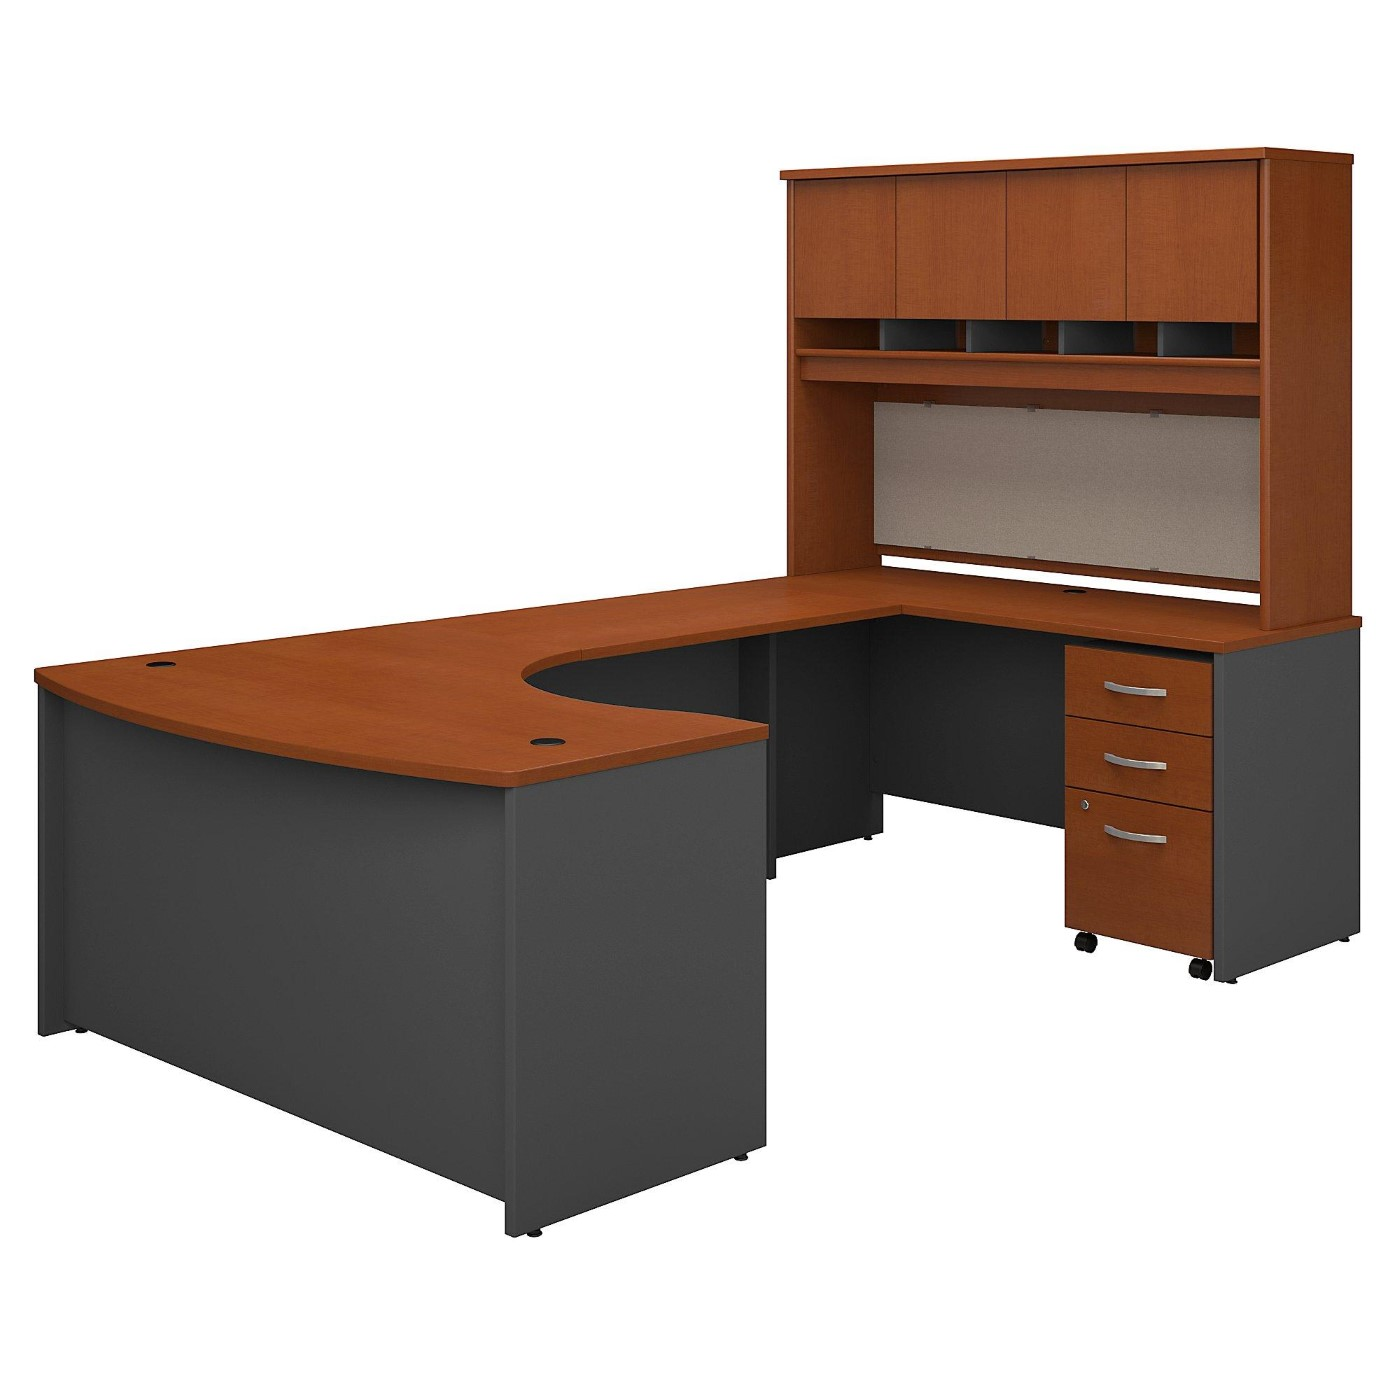 <font color=#c60><b>BUSH BUSINESS FURNITURE SERIES C 60W LEFT HANDED BOW FRONT U SHAPED DESK WITH HUTCH AND STORAGE. FREE SHIPPING</font></b></font>